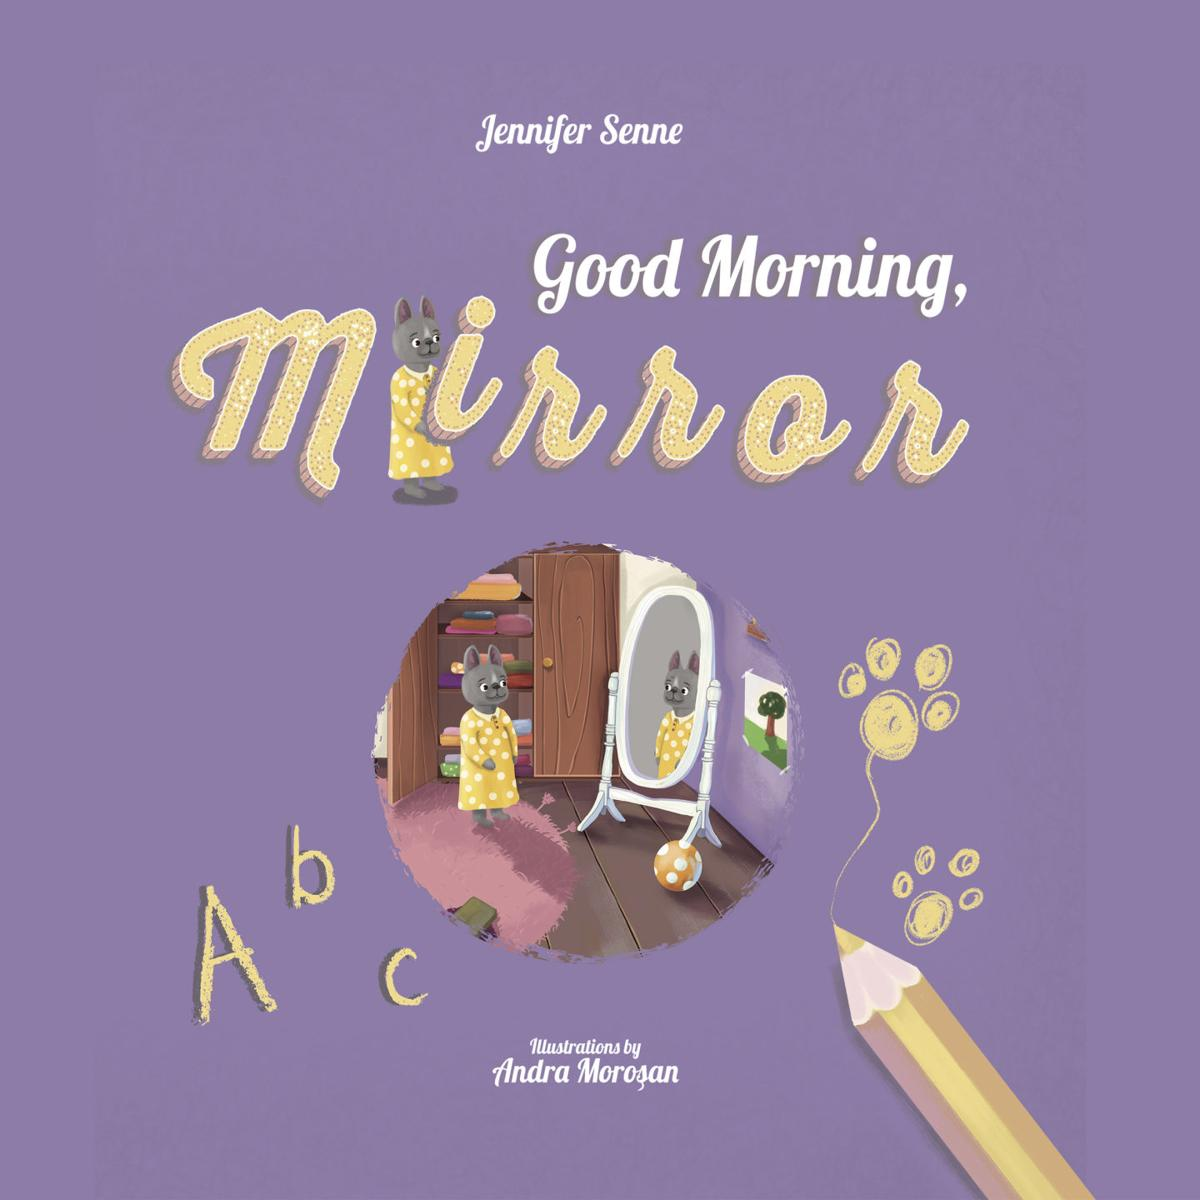 New book for children promotes positive self-image